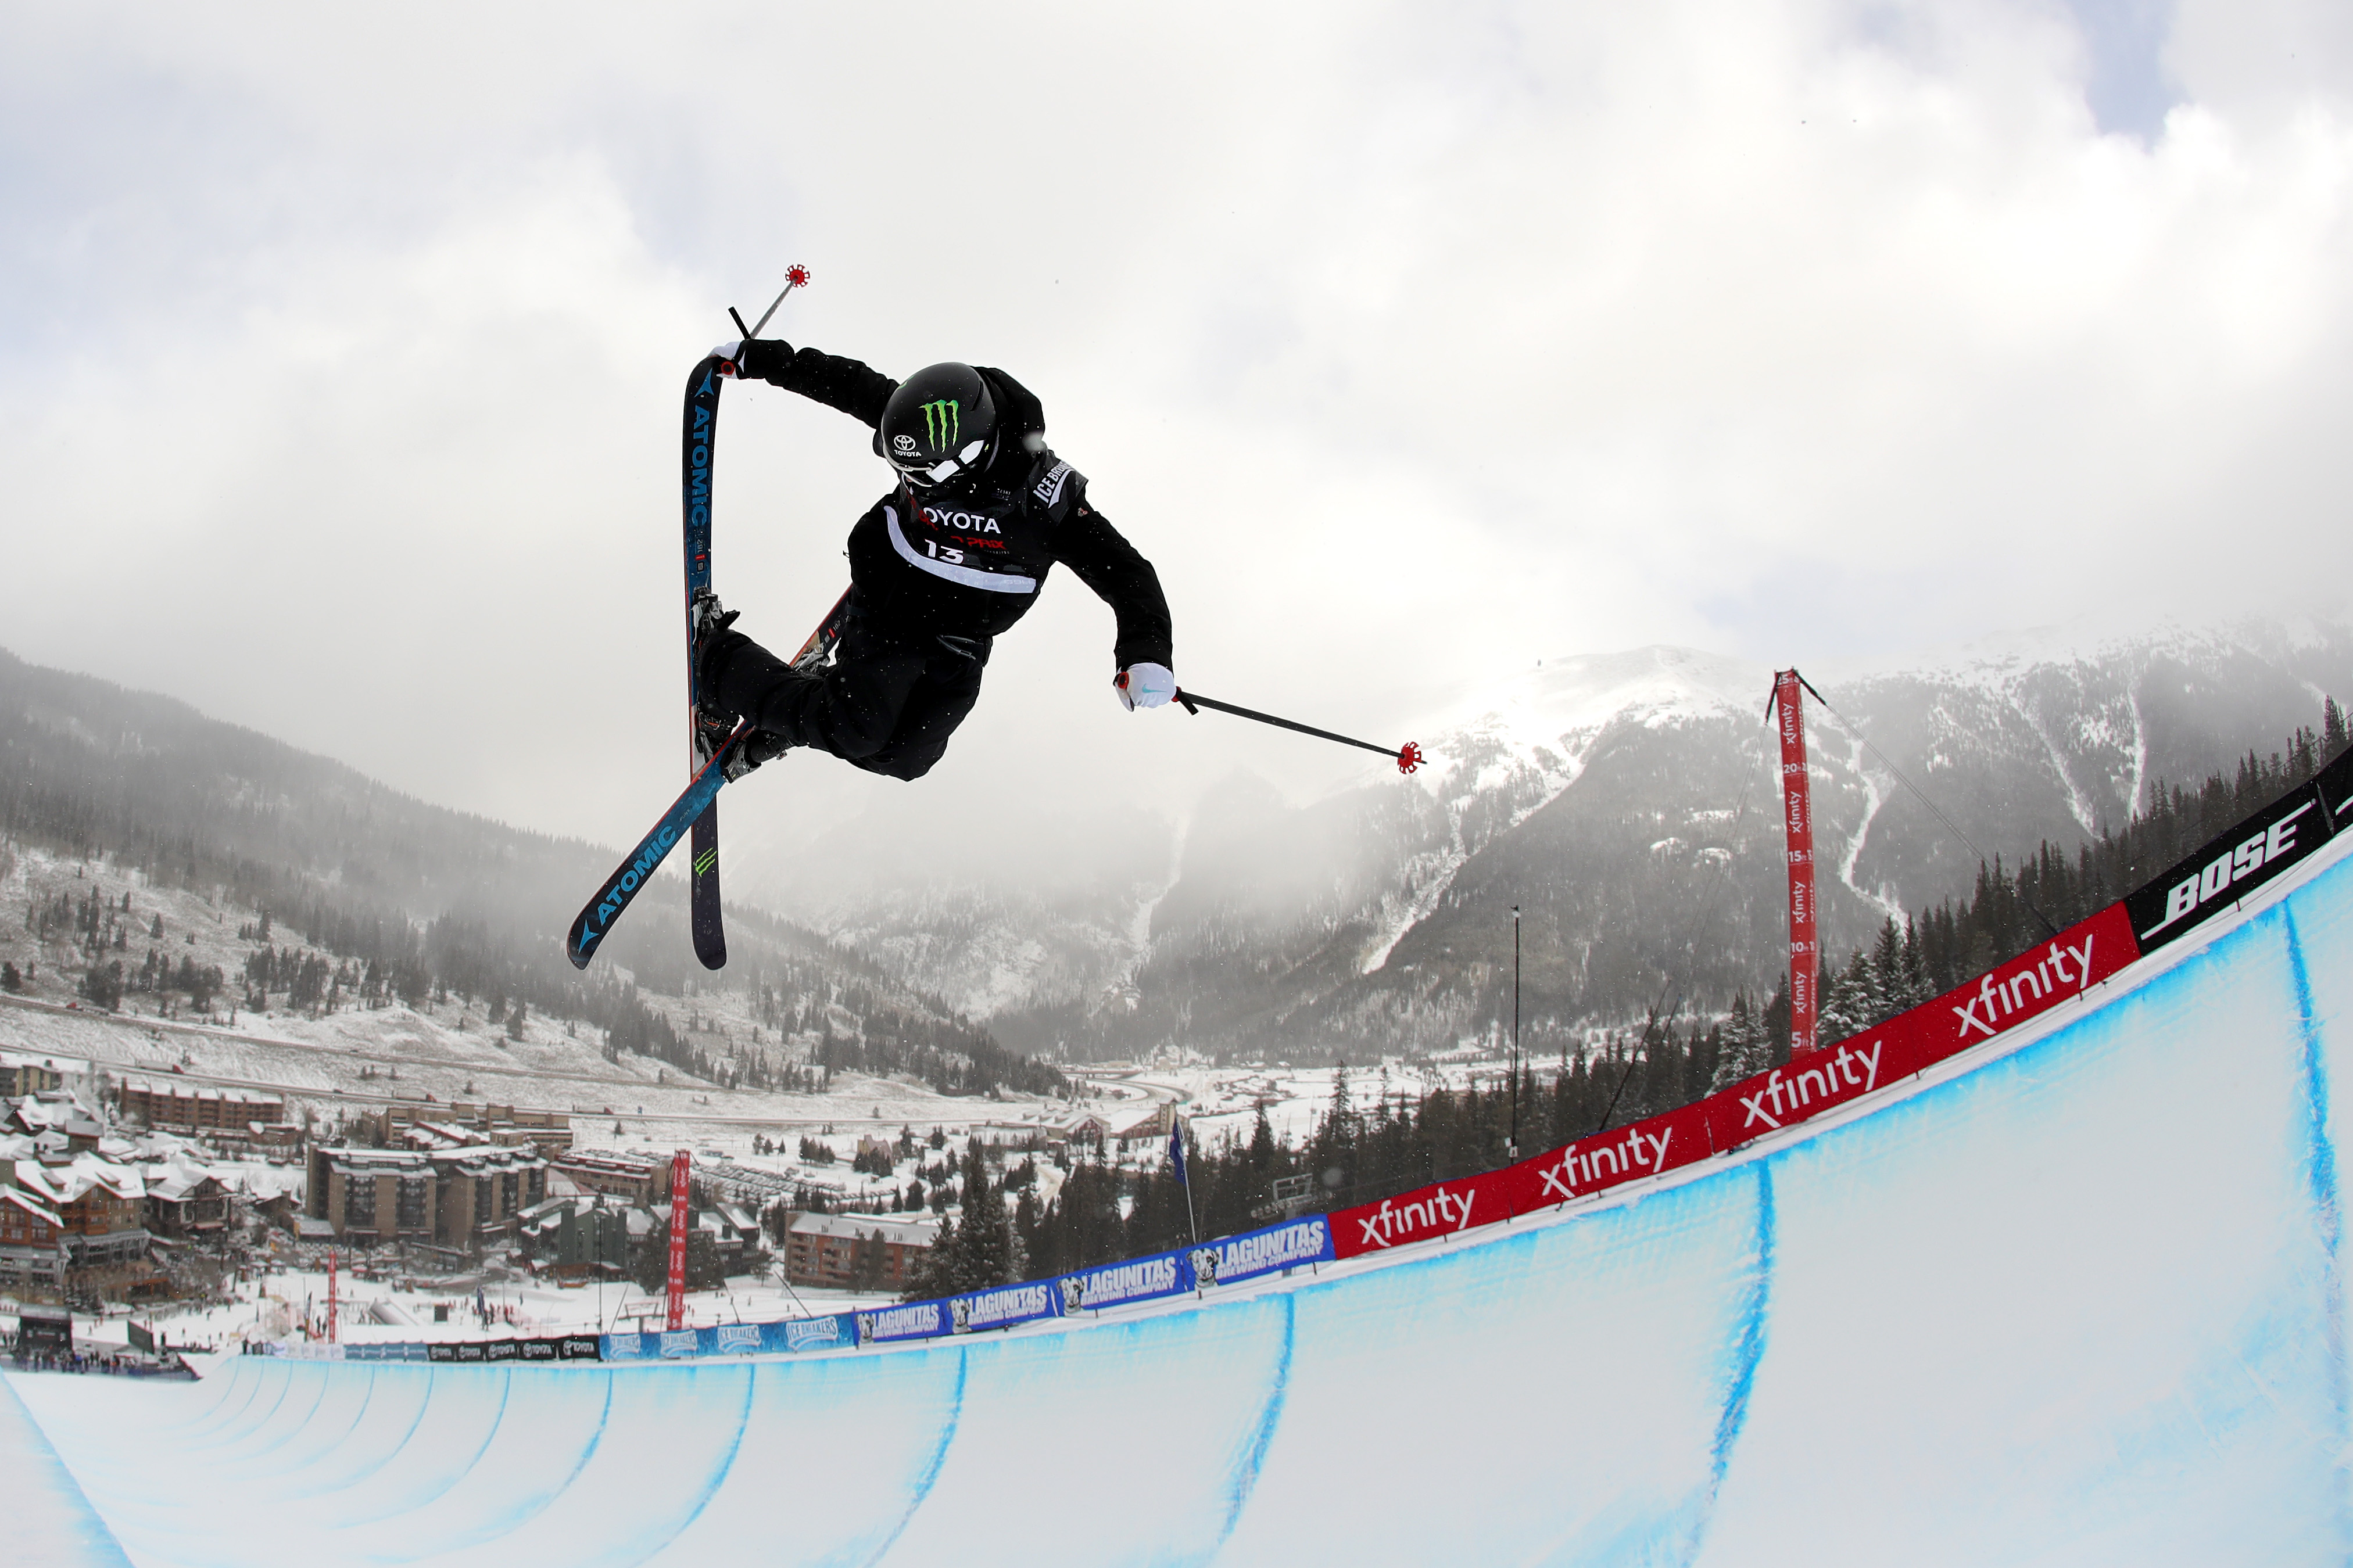 Gus Kenworthy of the United States competes in a qualifying round of the FIS Freeski World Cup 2018 Men's Ski Halfpipe during the Toyota U.S. Grand Prix on December 6, 2017 in Copper Mountain, Colorado.